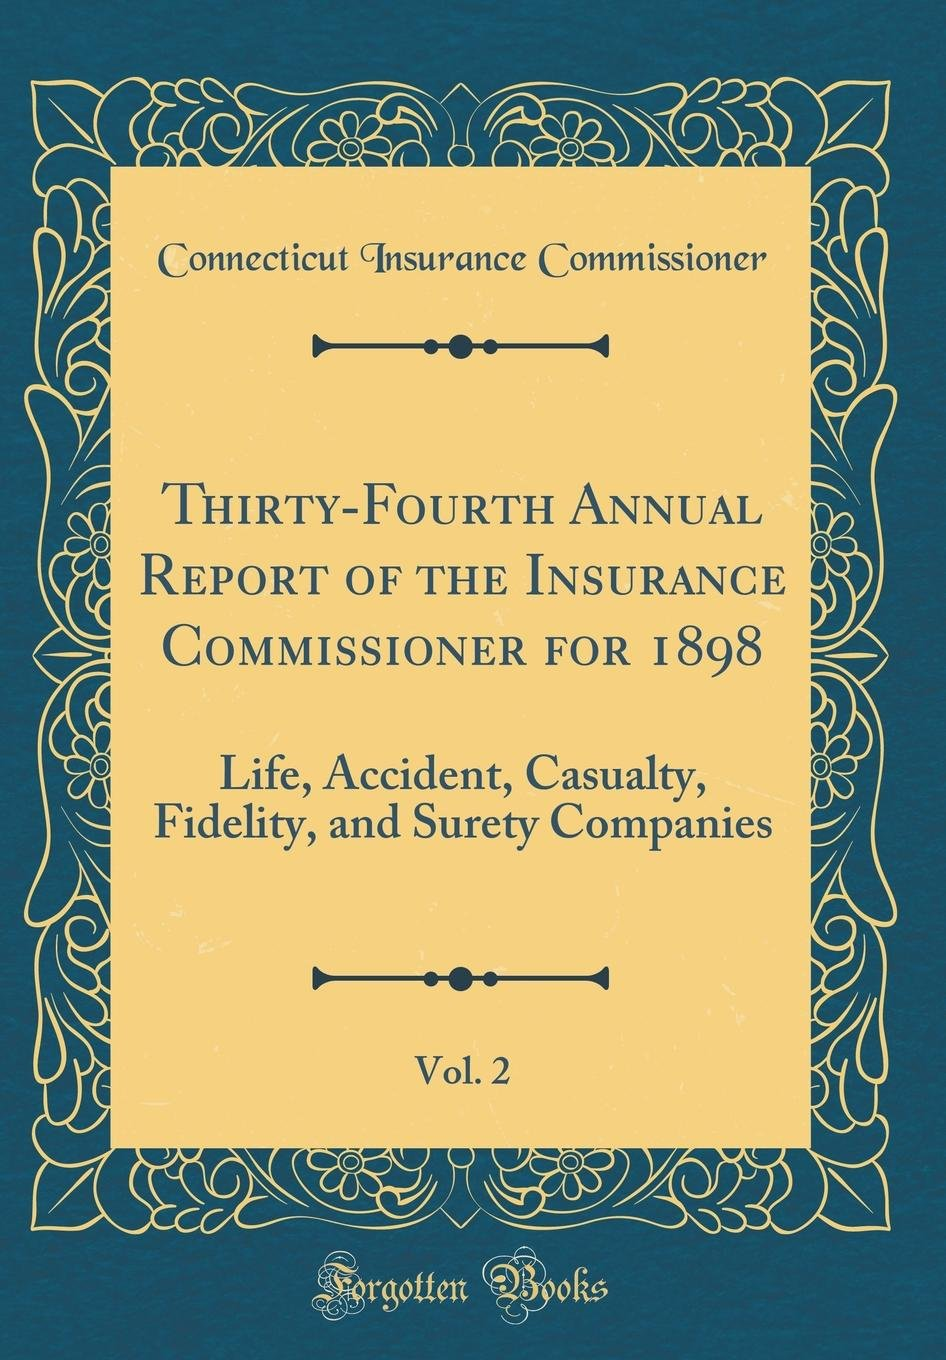 Download Thirty-Fourth Annual Report of the Insurance Commissioner for 1898, Vol. 2: Life, Accident, Casualty, Fidelity, and Surety Companies (Classic Reprint) pdf epub